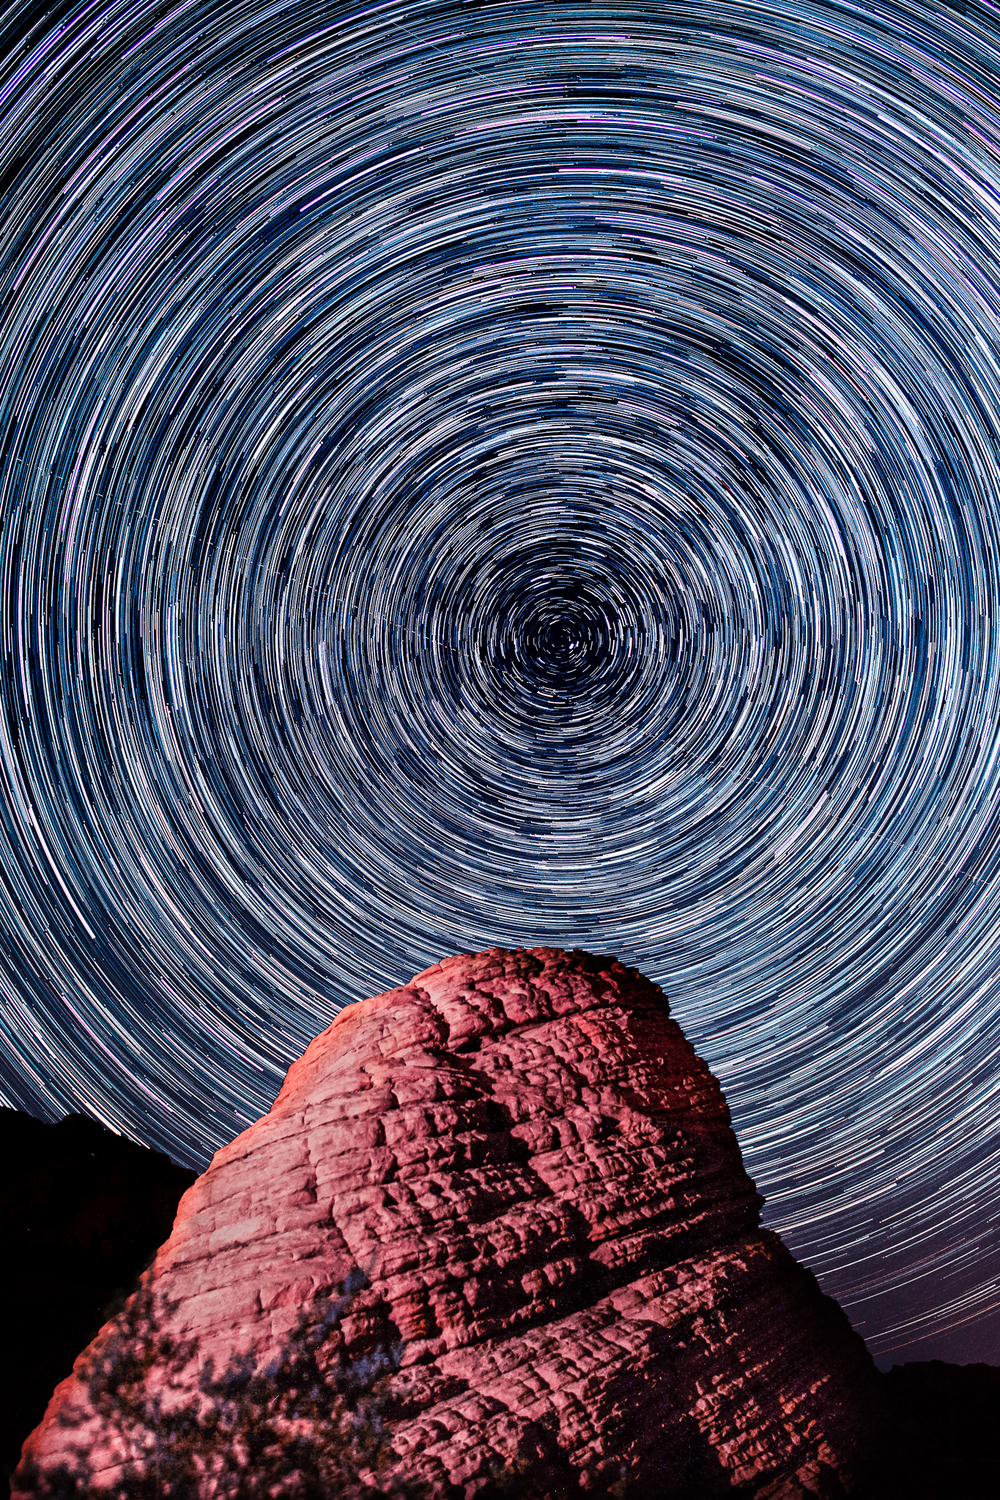 VOF_Arch_StarTrails_111_Jun04.jpg